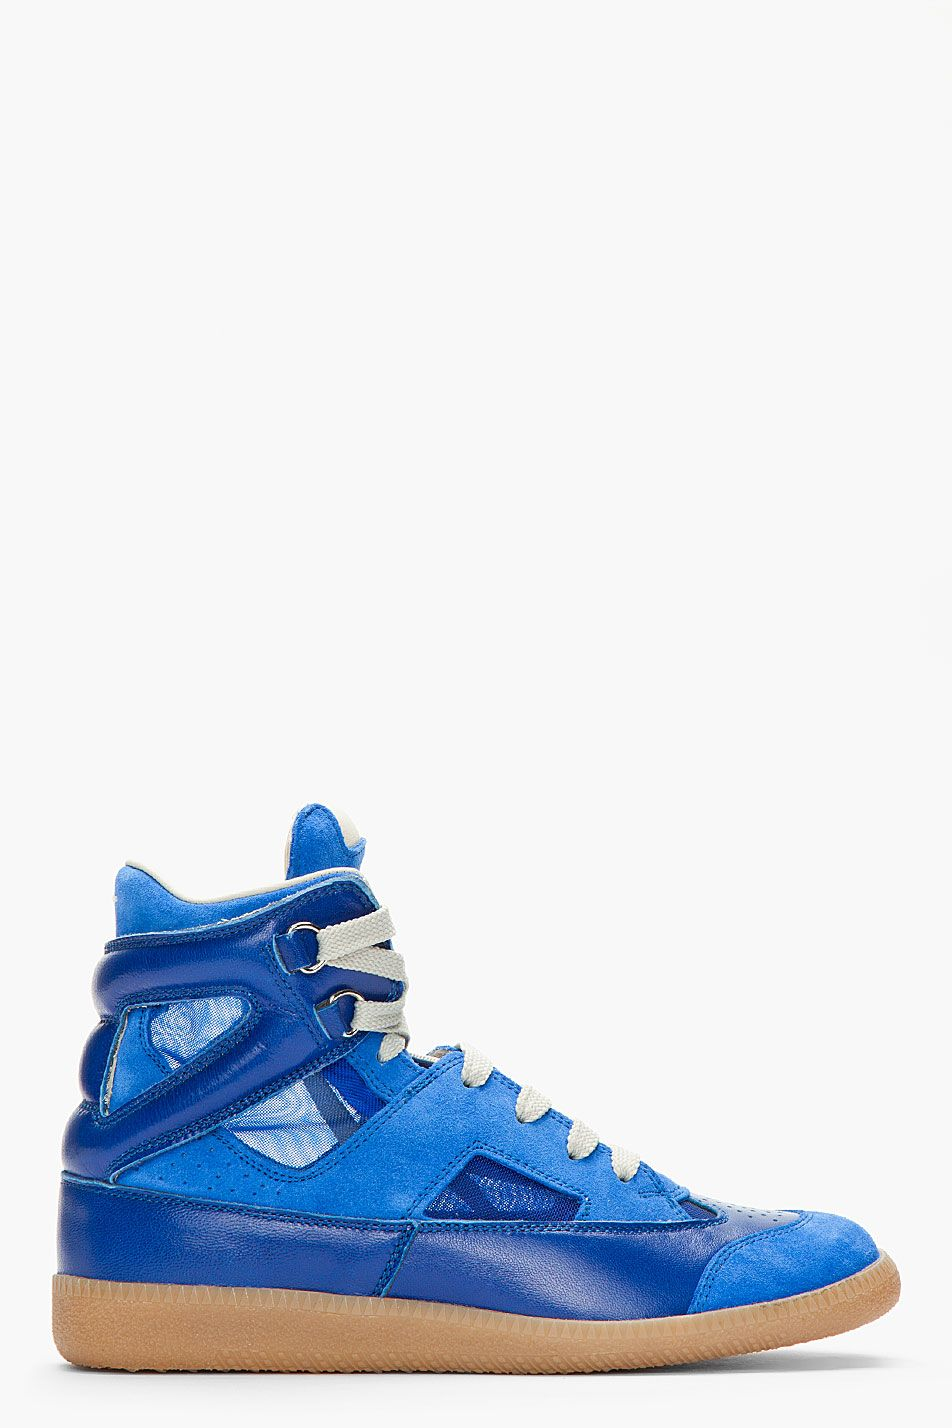 MAISON MARTIN MARGIELA Blue suede and leather Mesh Insert Sneakers